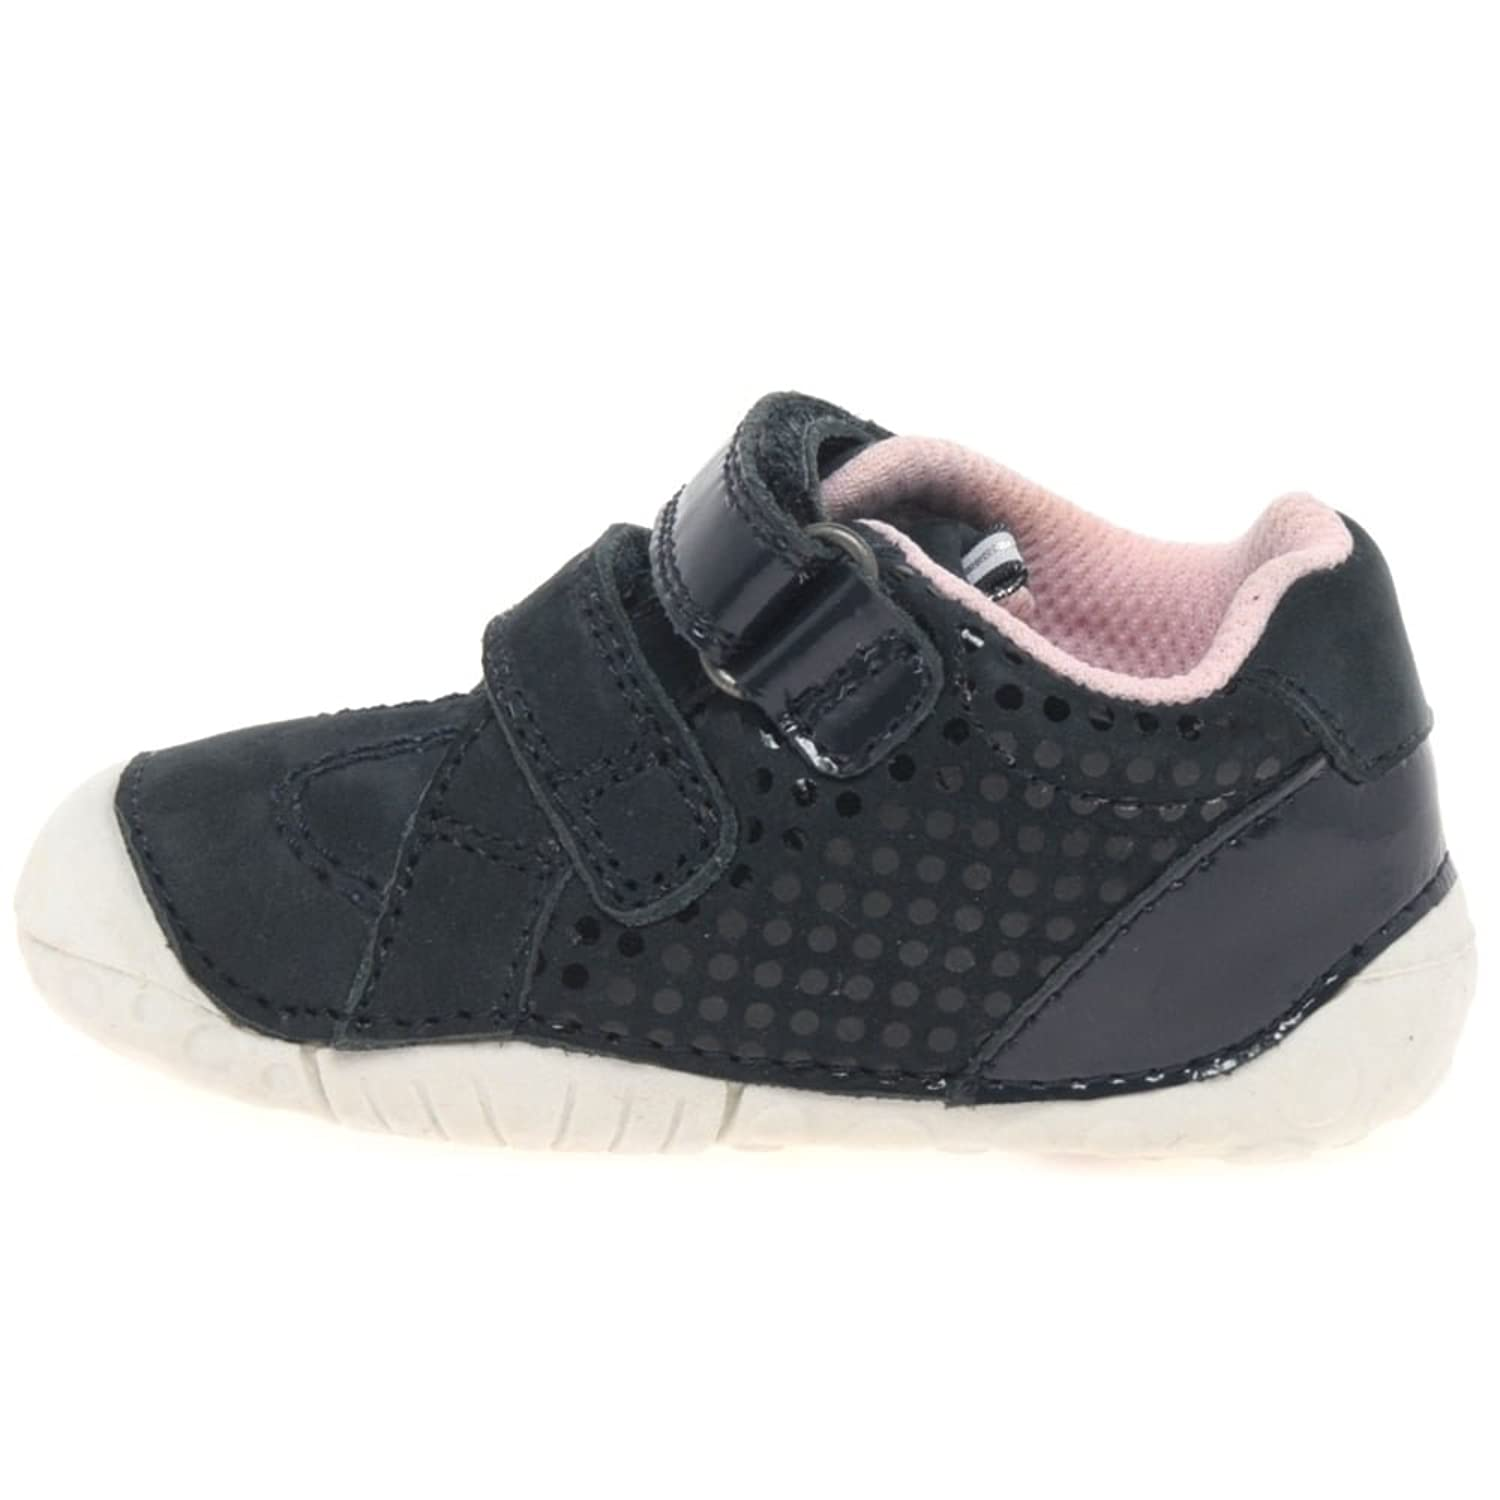 3ec48b679e74c Startrite Baby Turin Girls Navy Patent Prewalkers: Amazon.co.uk: Shoes &  Bags